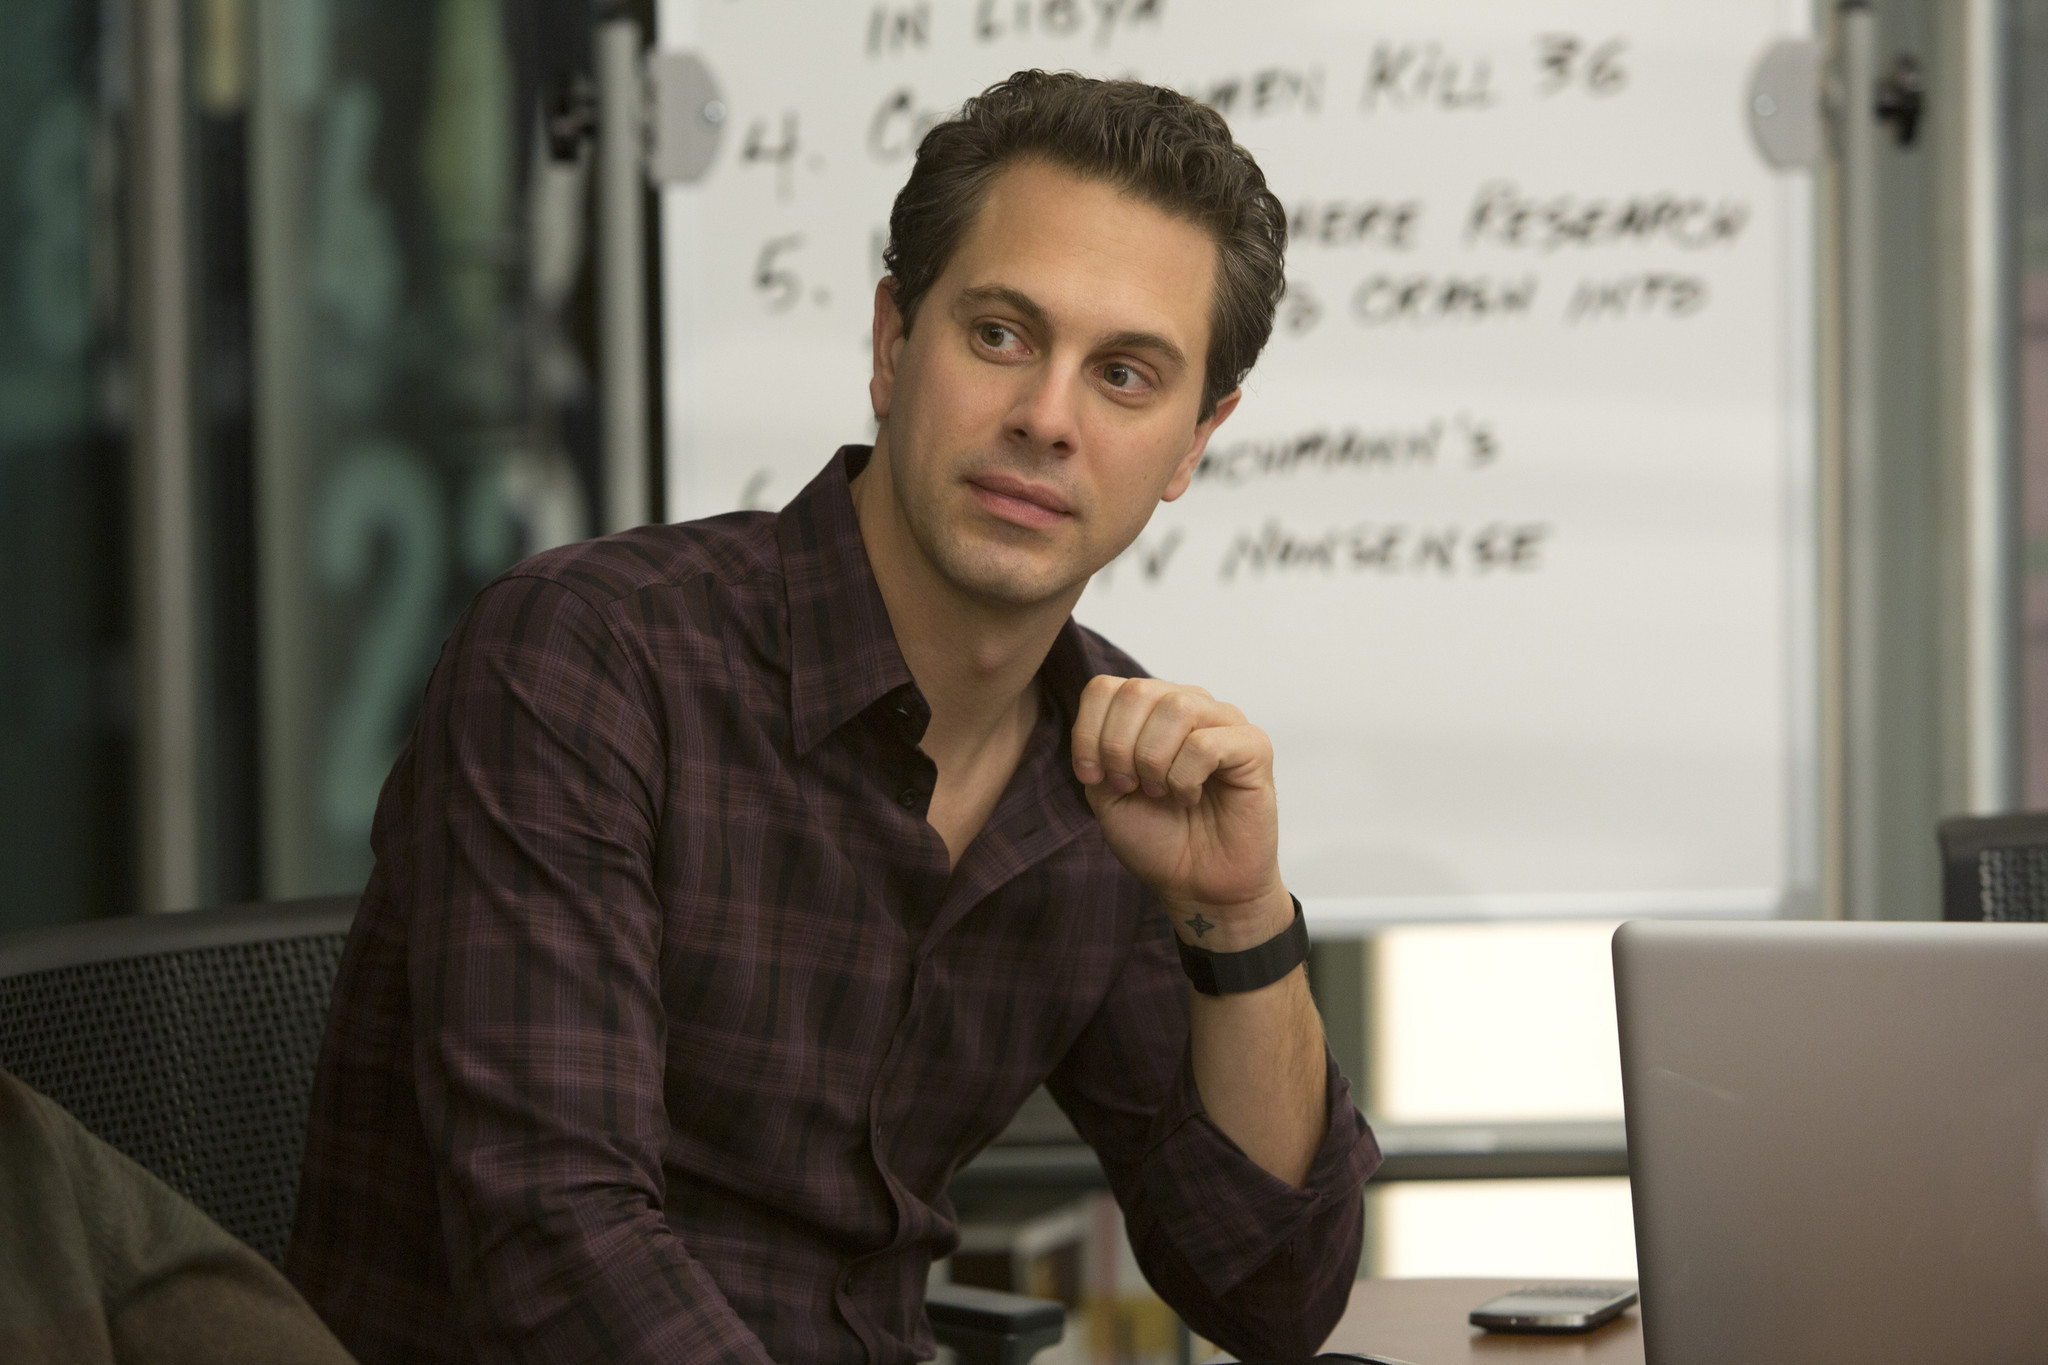 'The Newsroom' generates controversy after rape story line ...